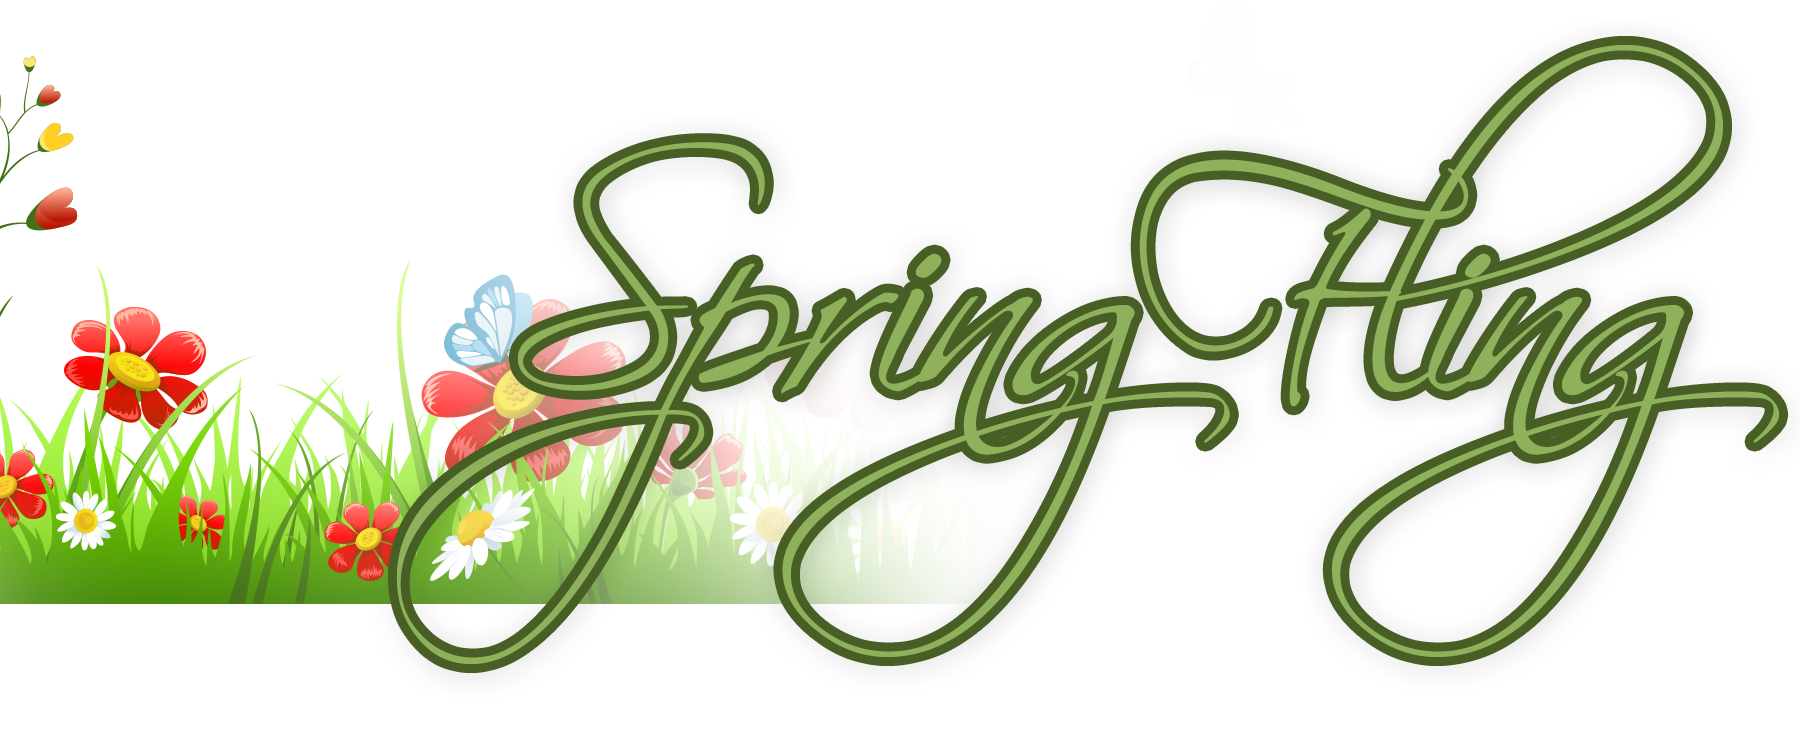 Fling open house tussey. Mountain clipart spring